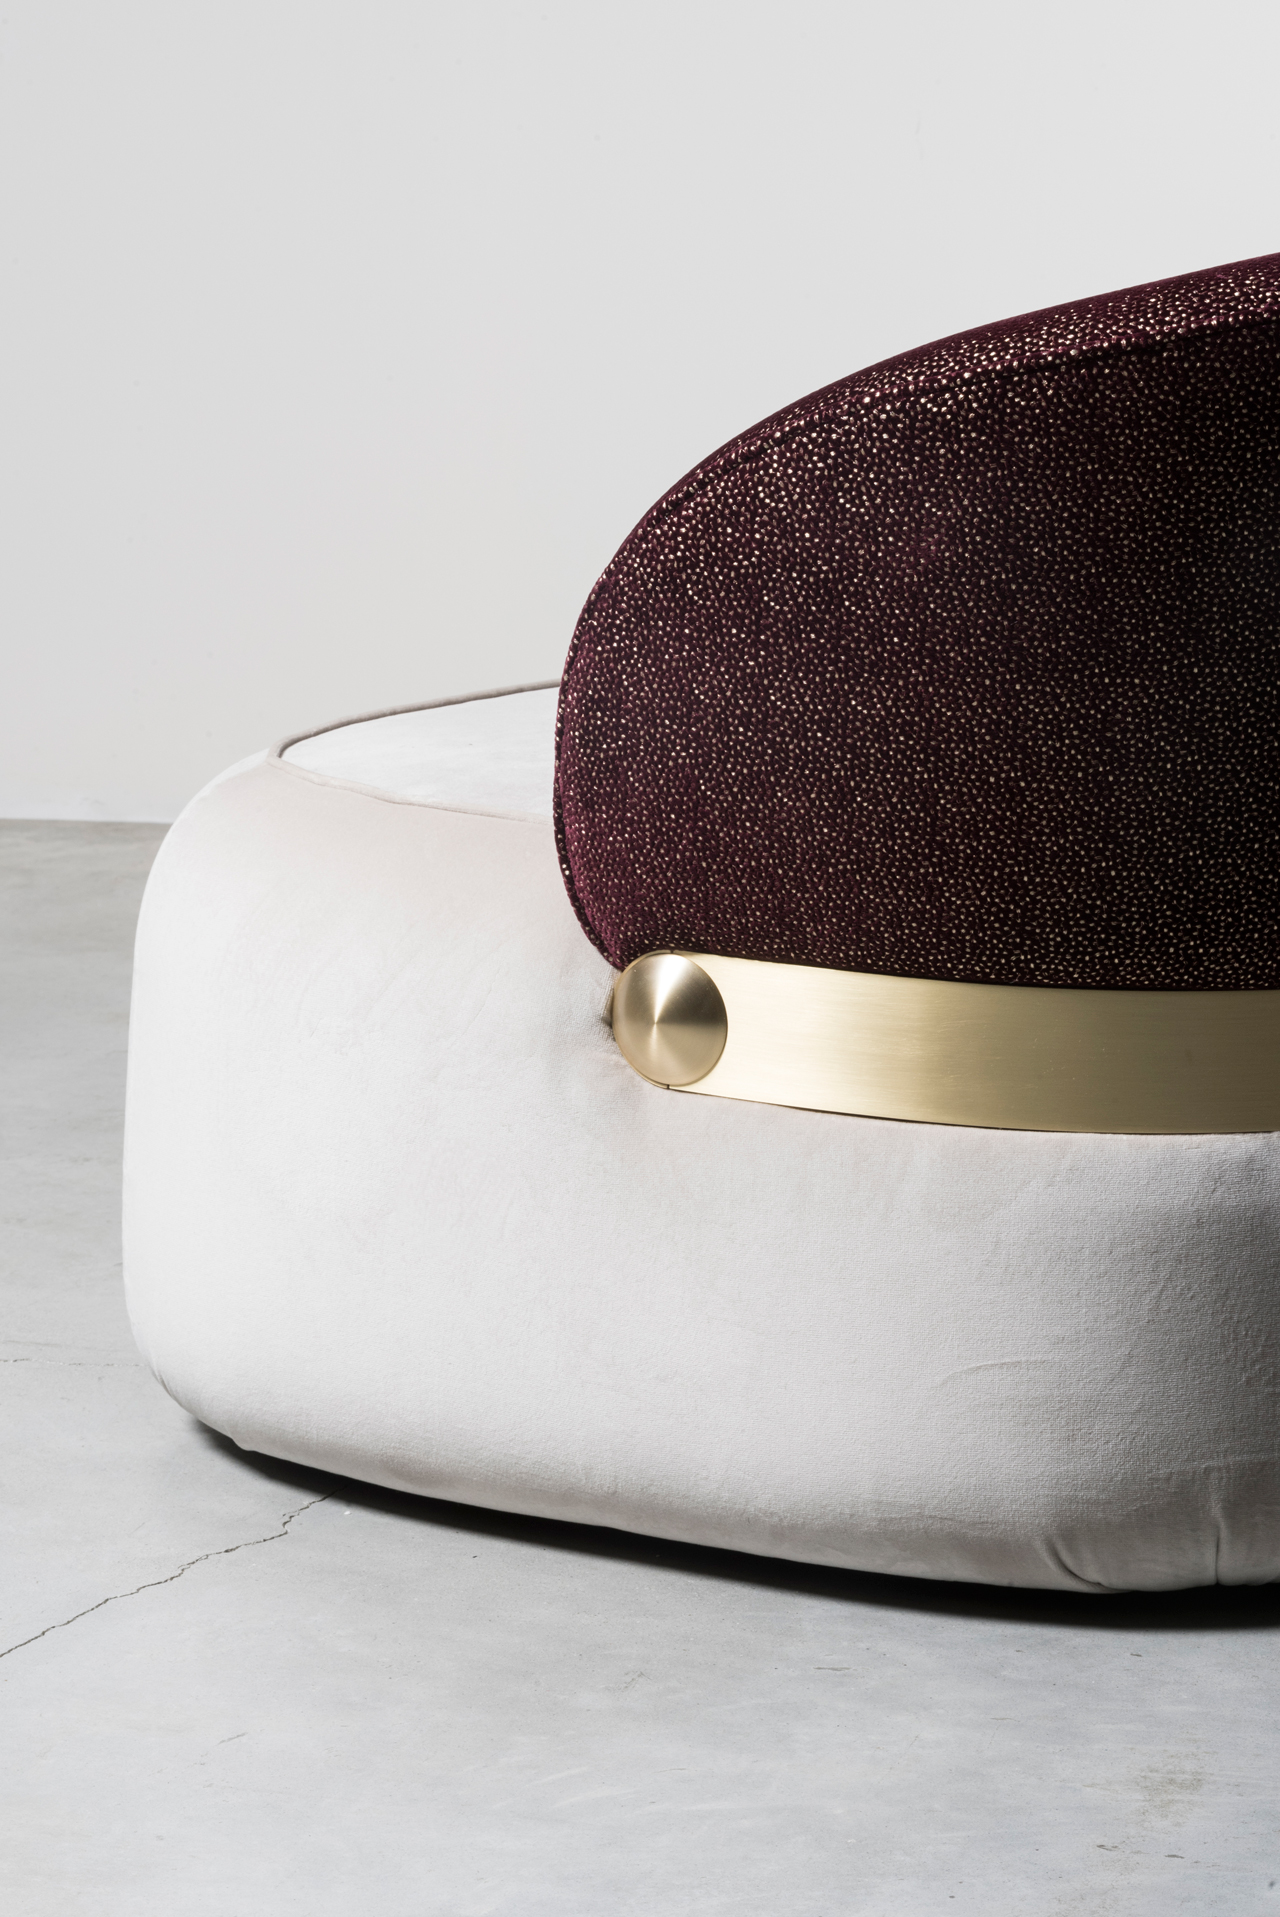 Visiera sofa (detail) by Cristina Celestino for Nilufar gallery. Photo © Daniele Iodice.